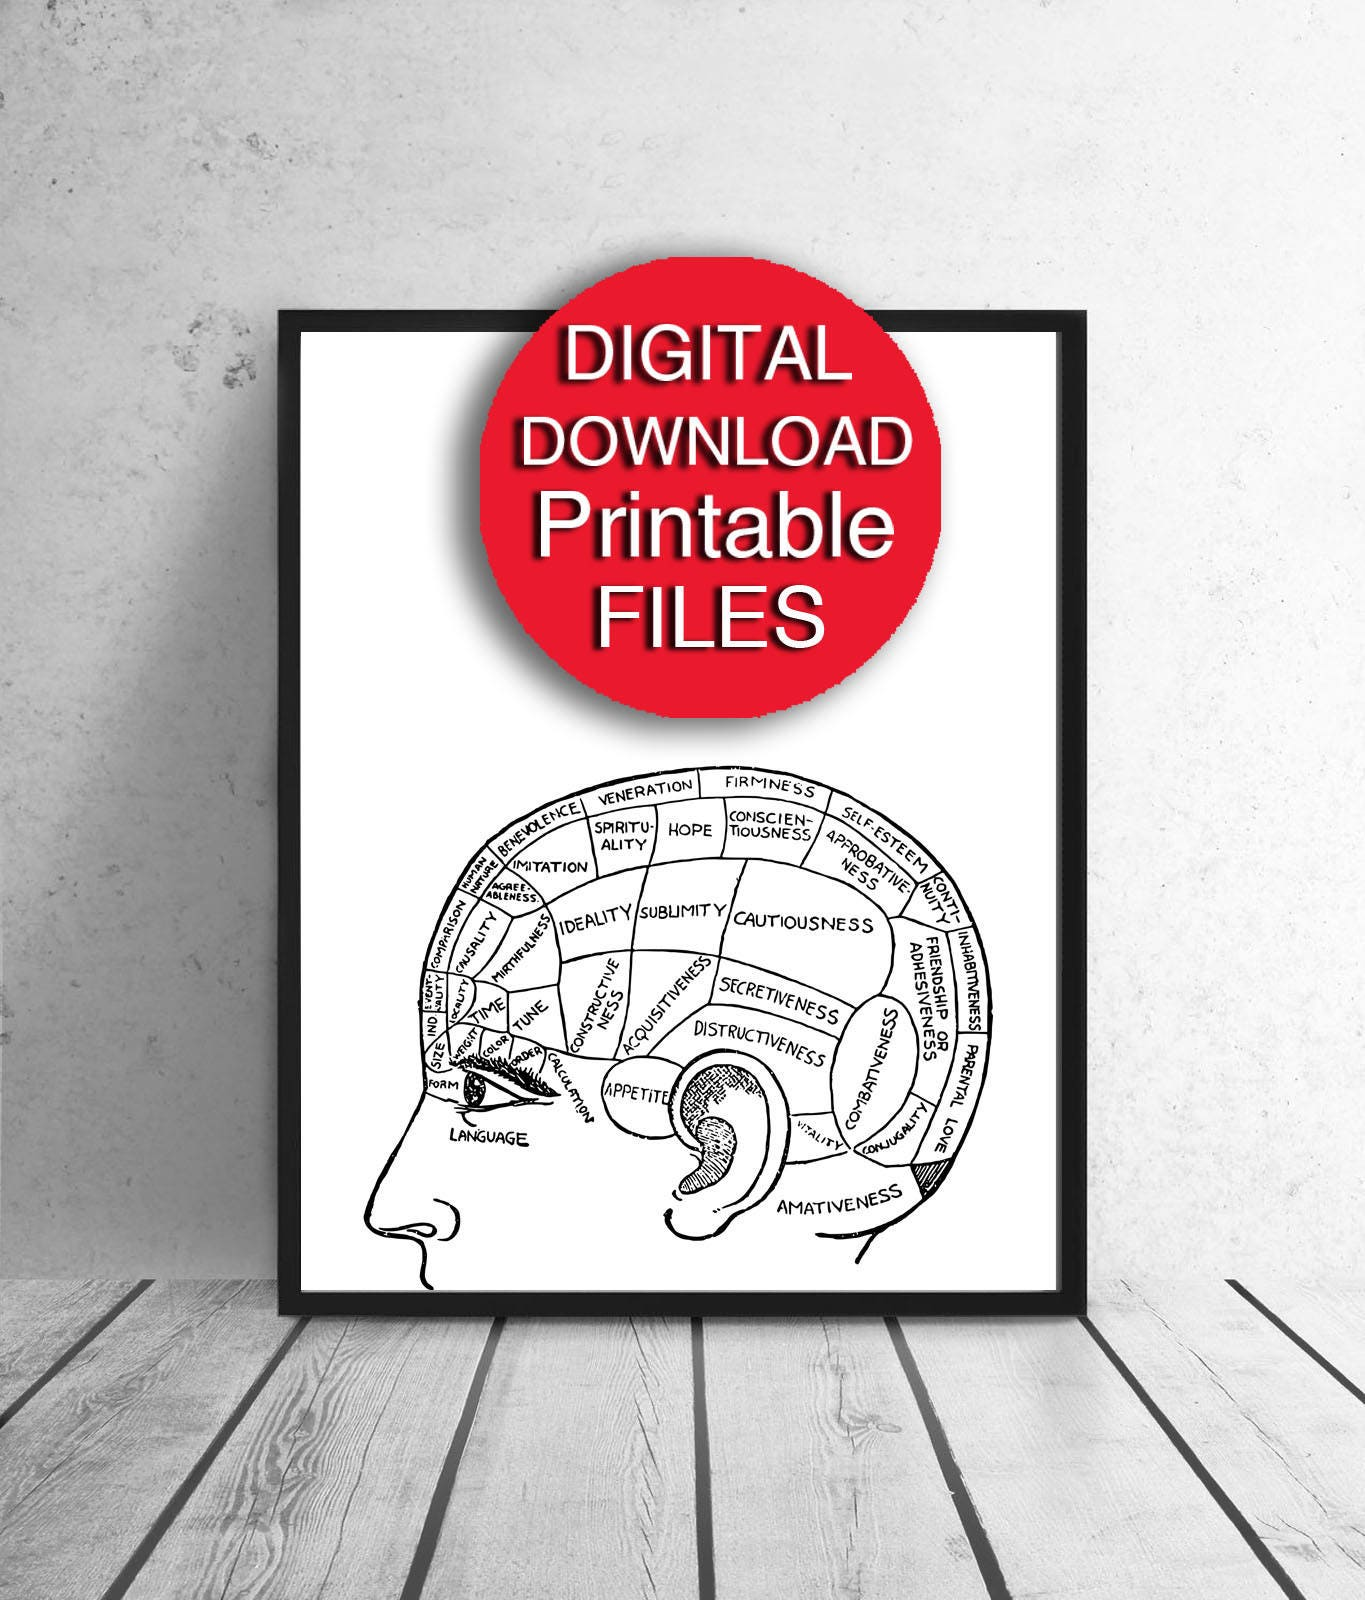 image relating to Brain Hat Printable called Phrenology Chart, Printable, Thoughts Print, Retro, 50x70 Printable Geek Present, 5x7 8x10 11x14 16x20 24x36 A3 A4